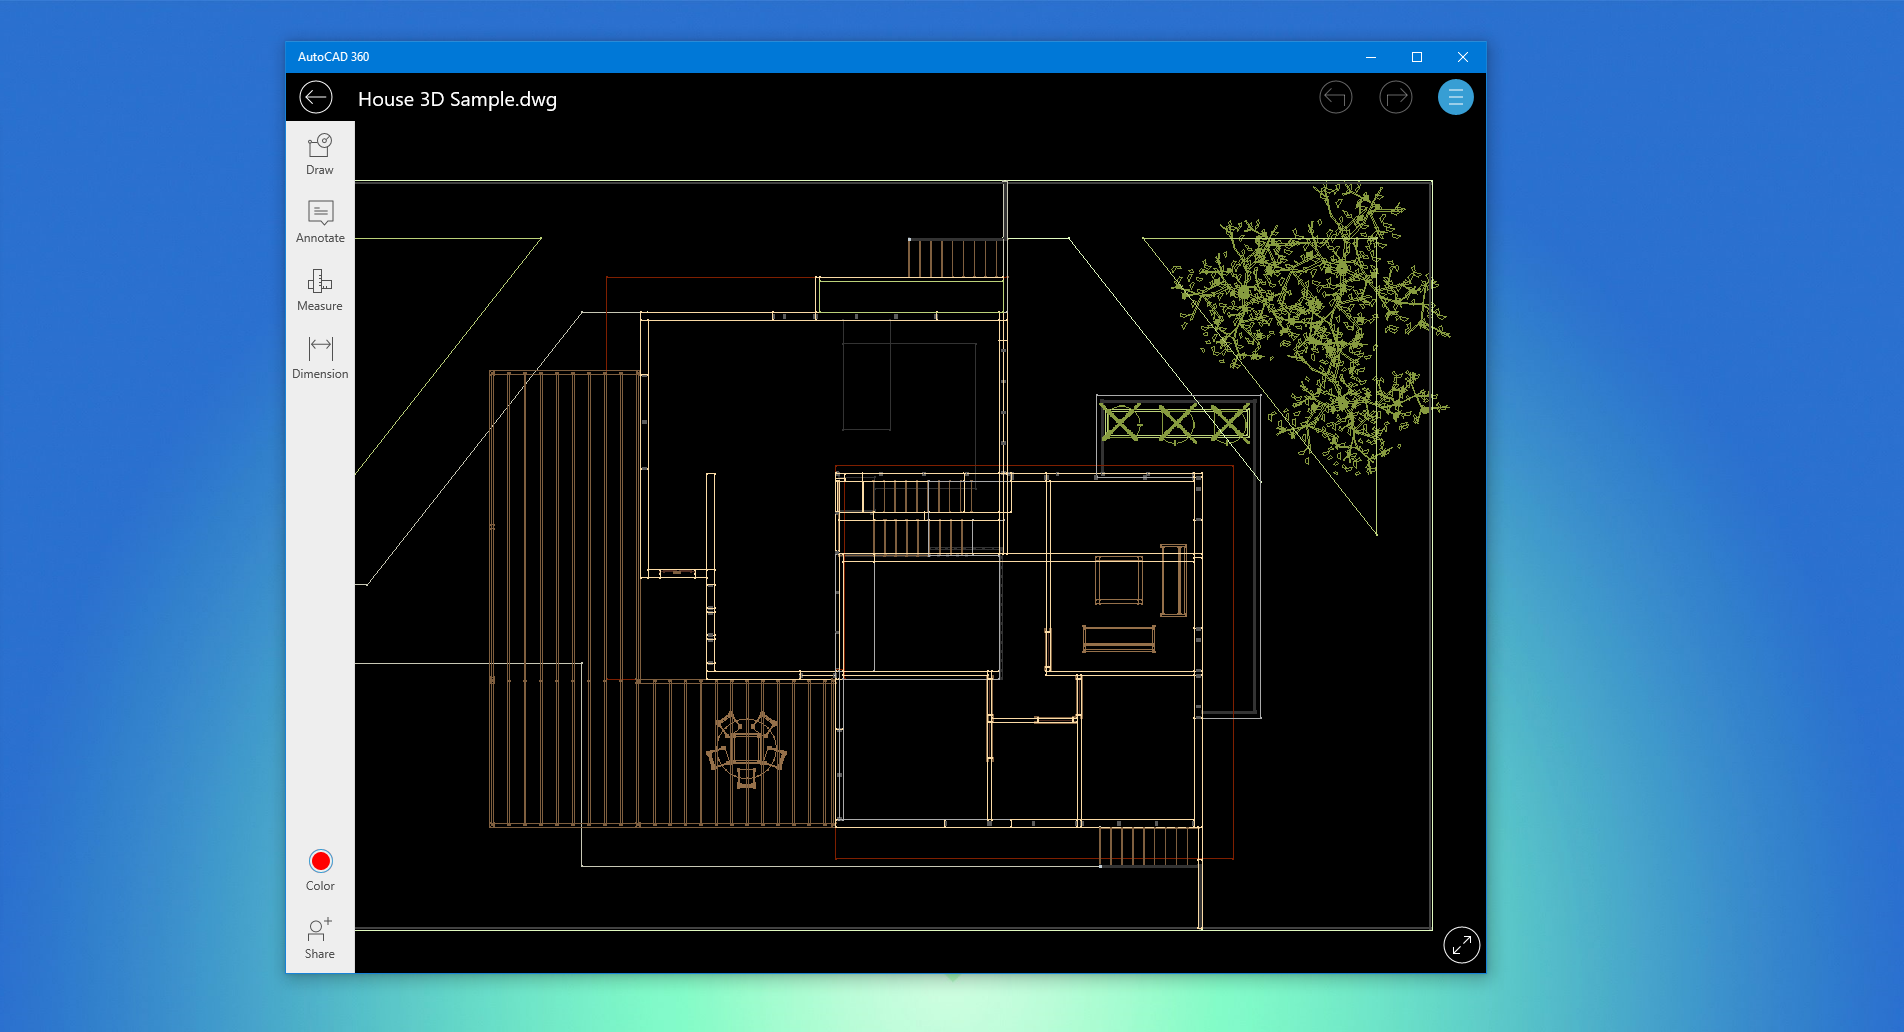 Autodesk releases new autocad 360 uwp app for windows 10 for Construction drawing apps